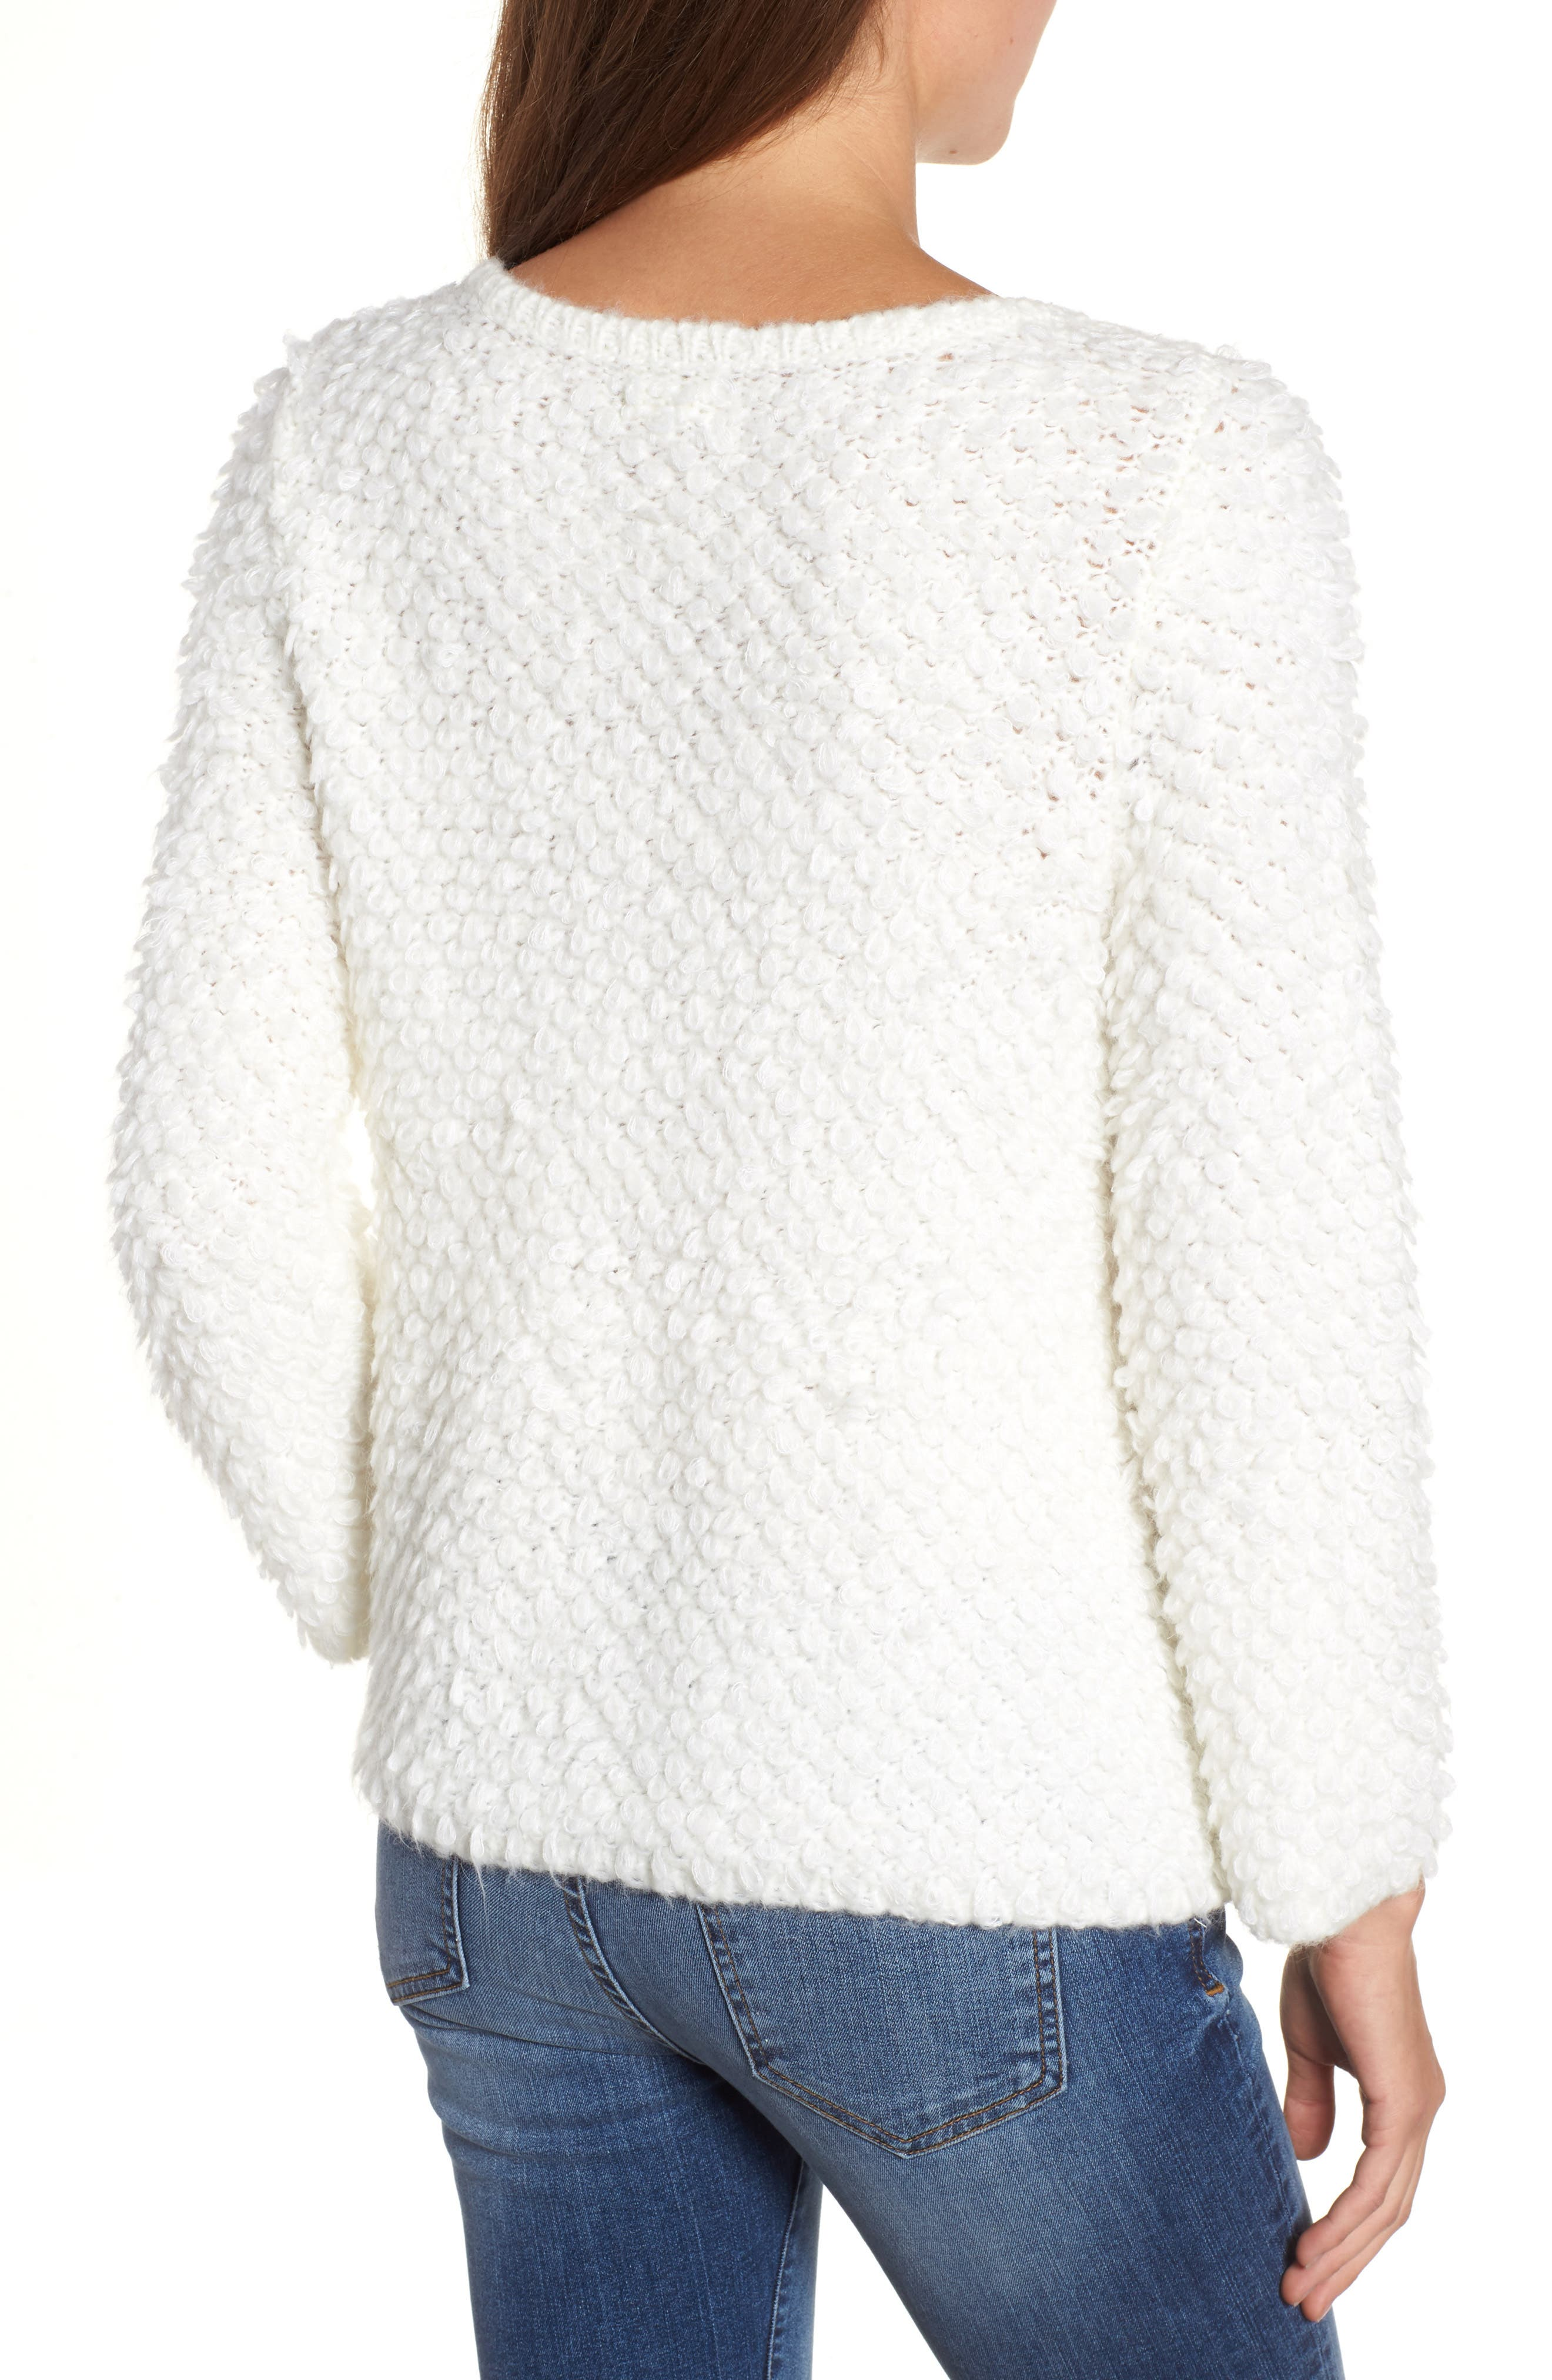 Loop Stitch Crewneck Sweater,                             Alternate thumbnail 2, color,                             901